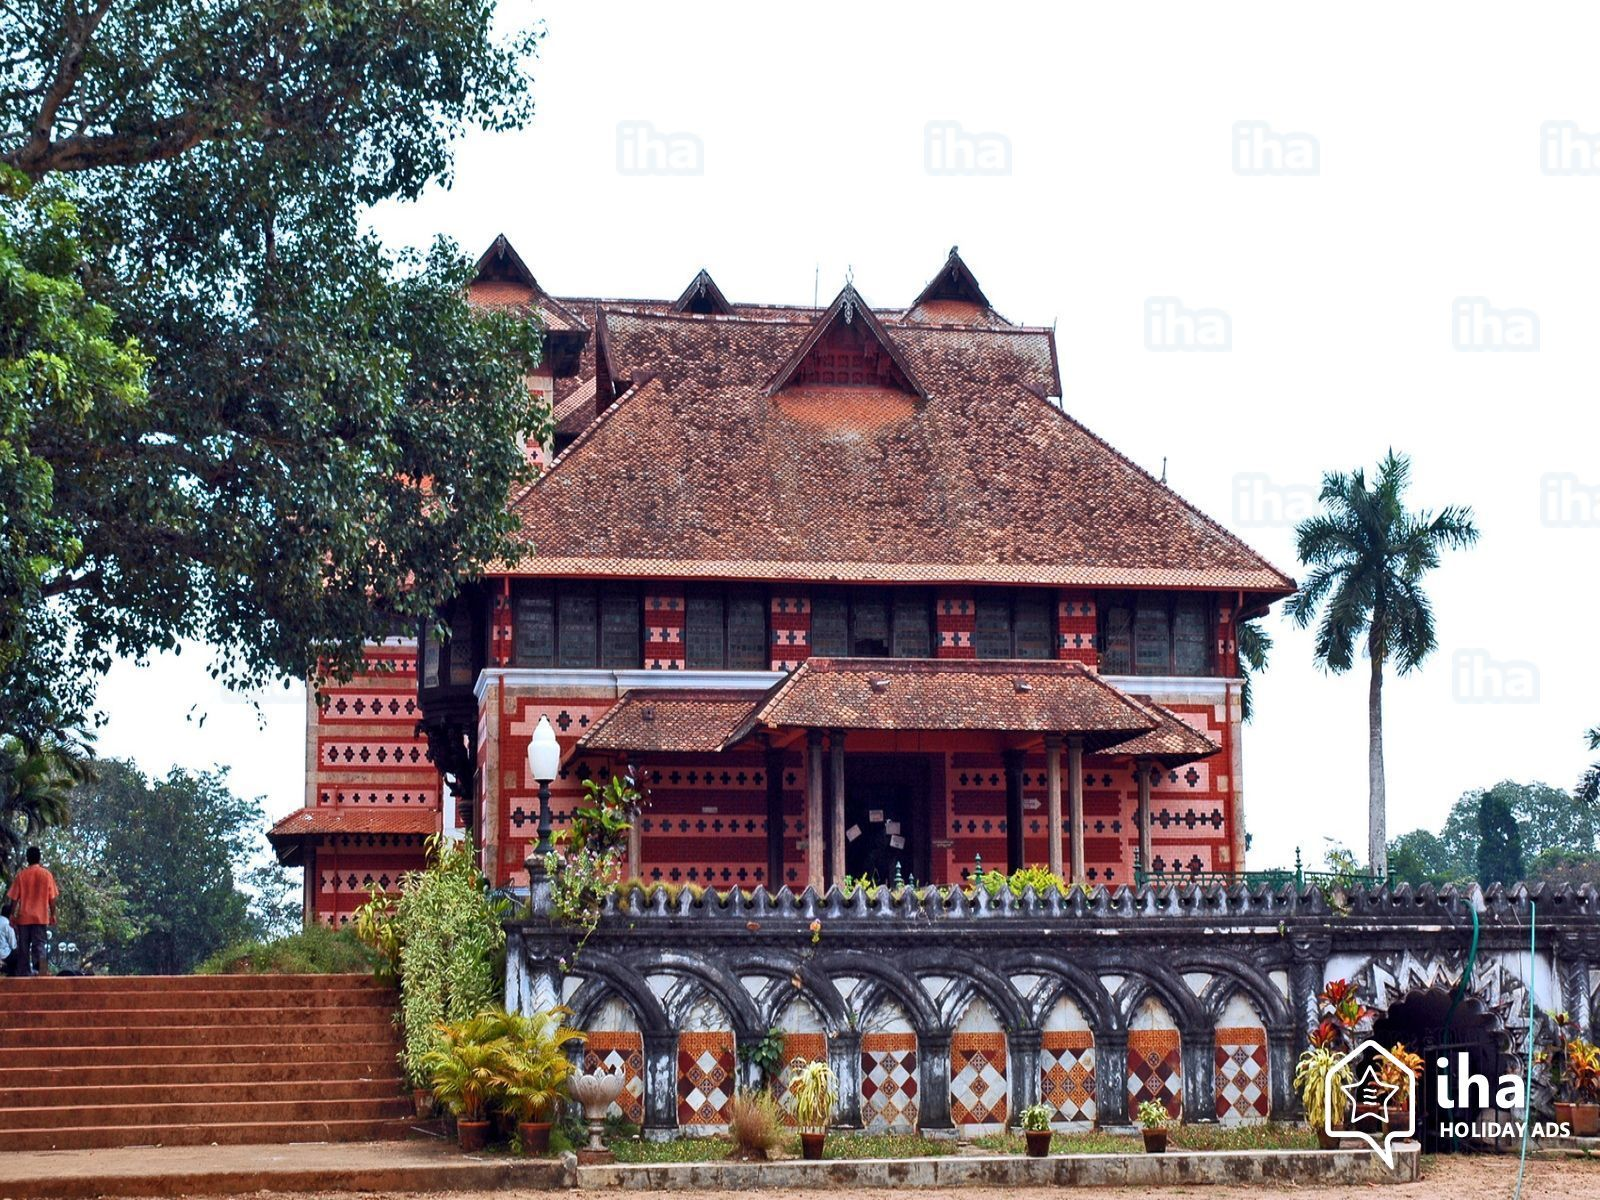 Plan for Trivandrum, Capital City of Kerala? Login with